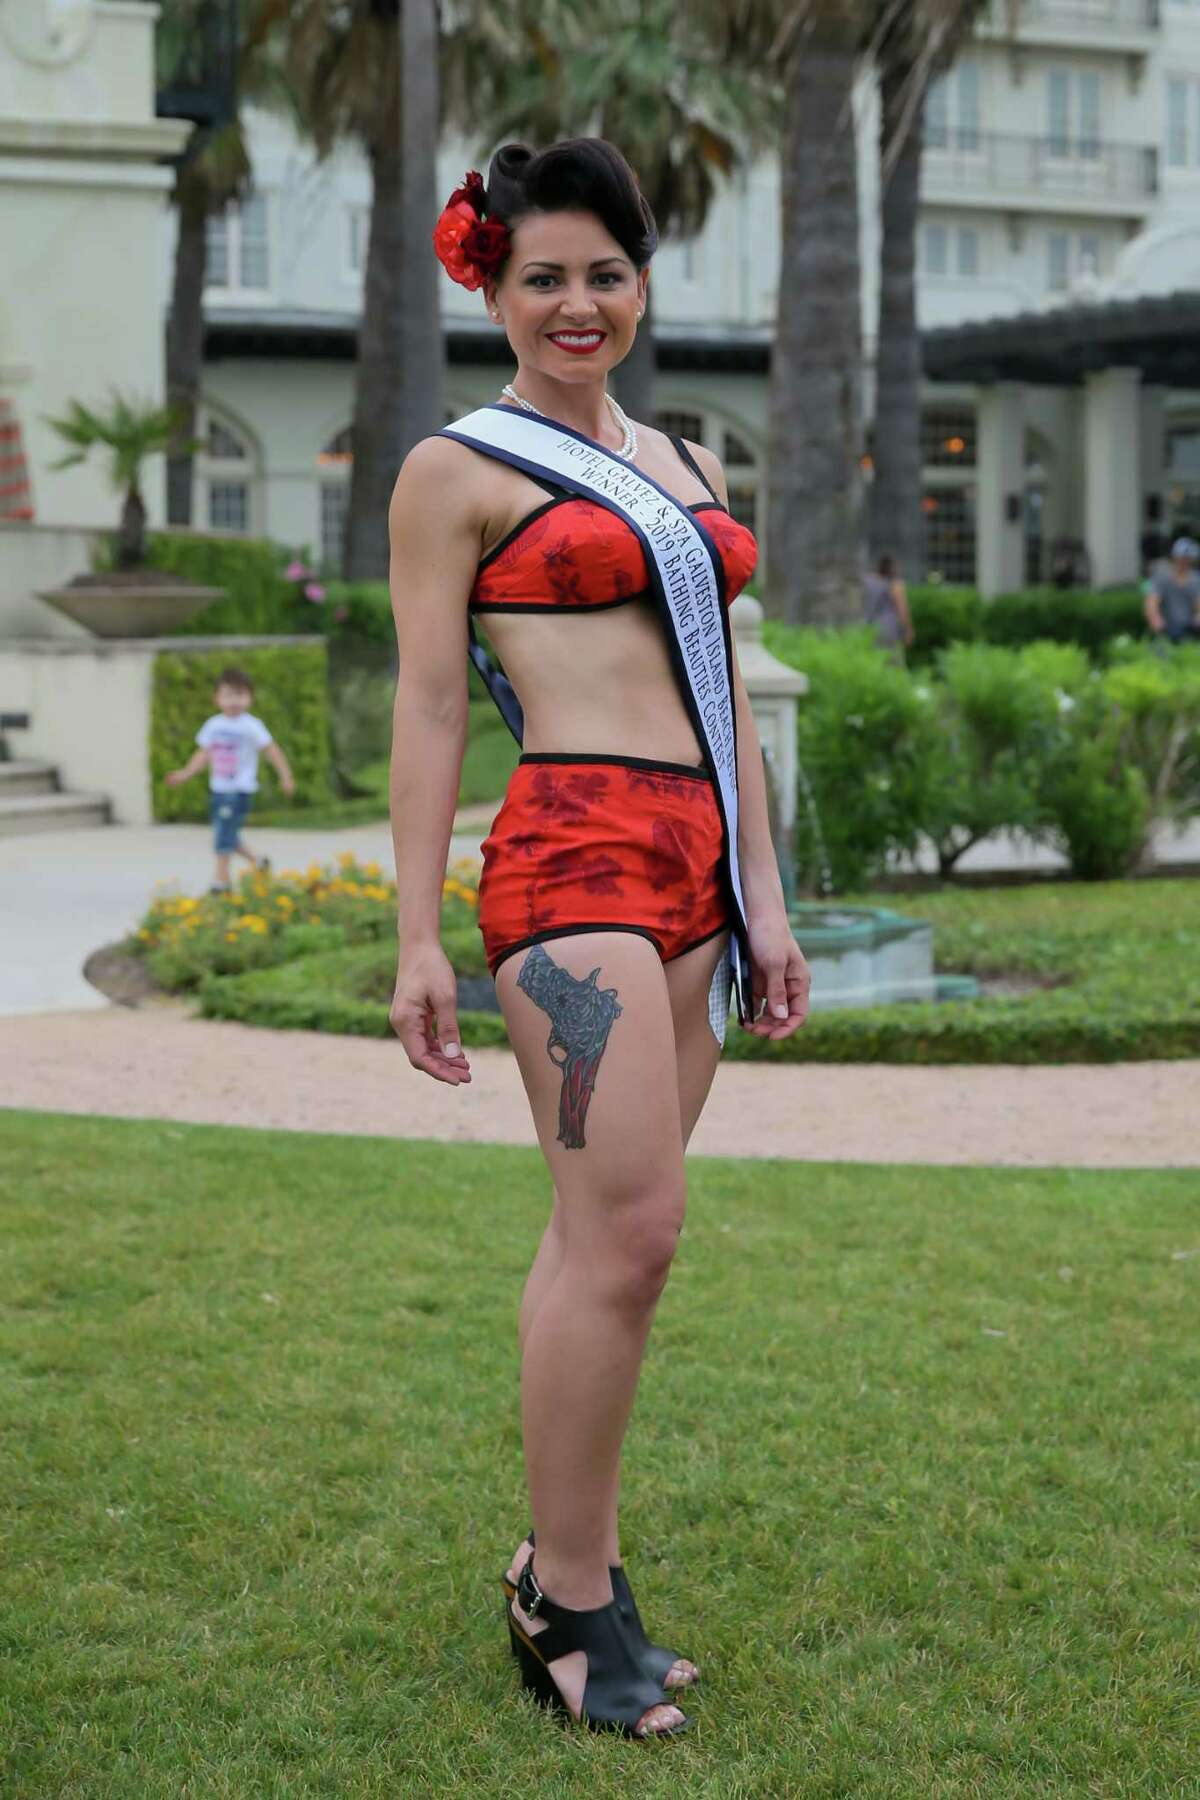 Jennifer Vera, first-place winner at the 2019 Bathing Beauties Contest at the Galveston Island Beach Revue, May 18, 2019.